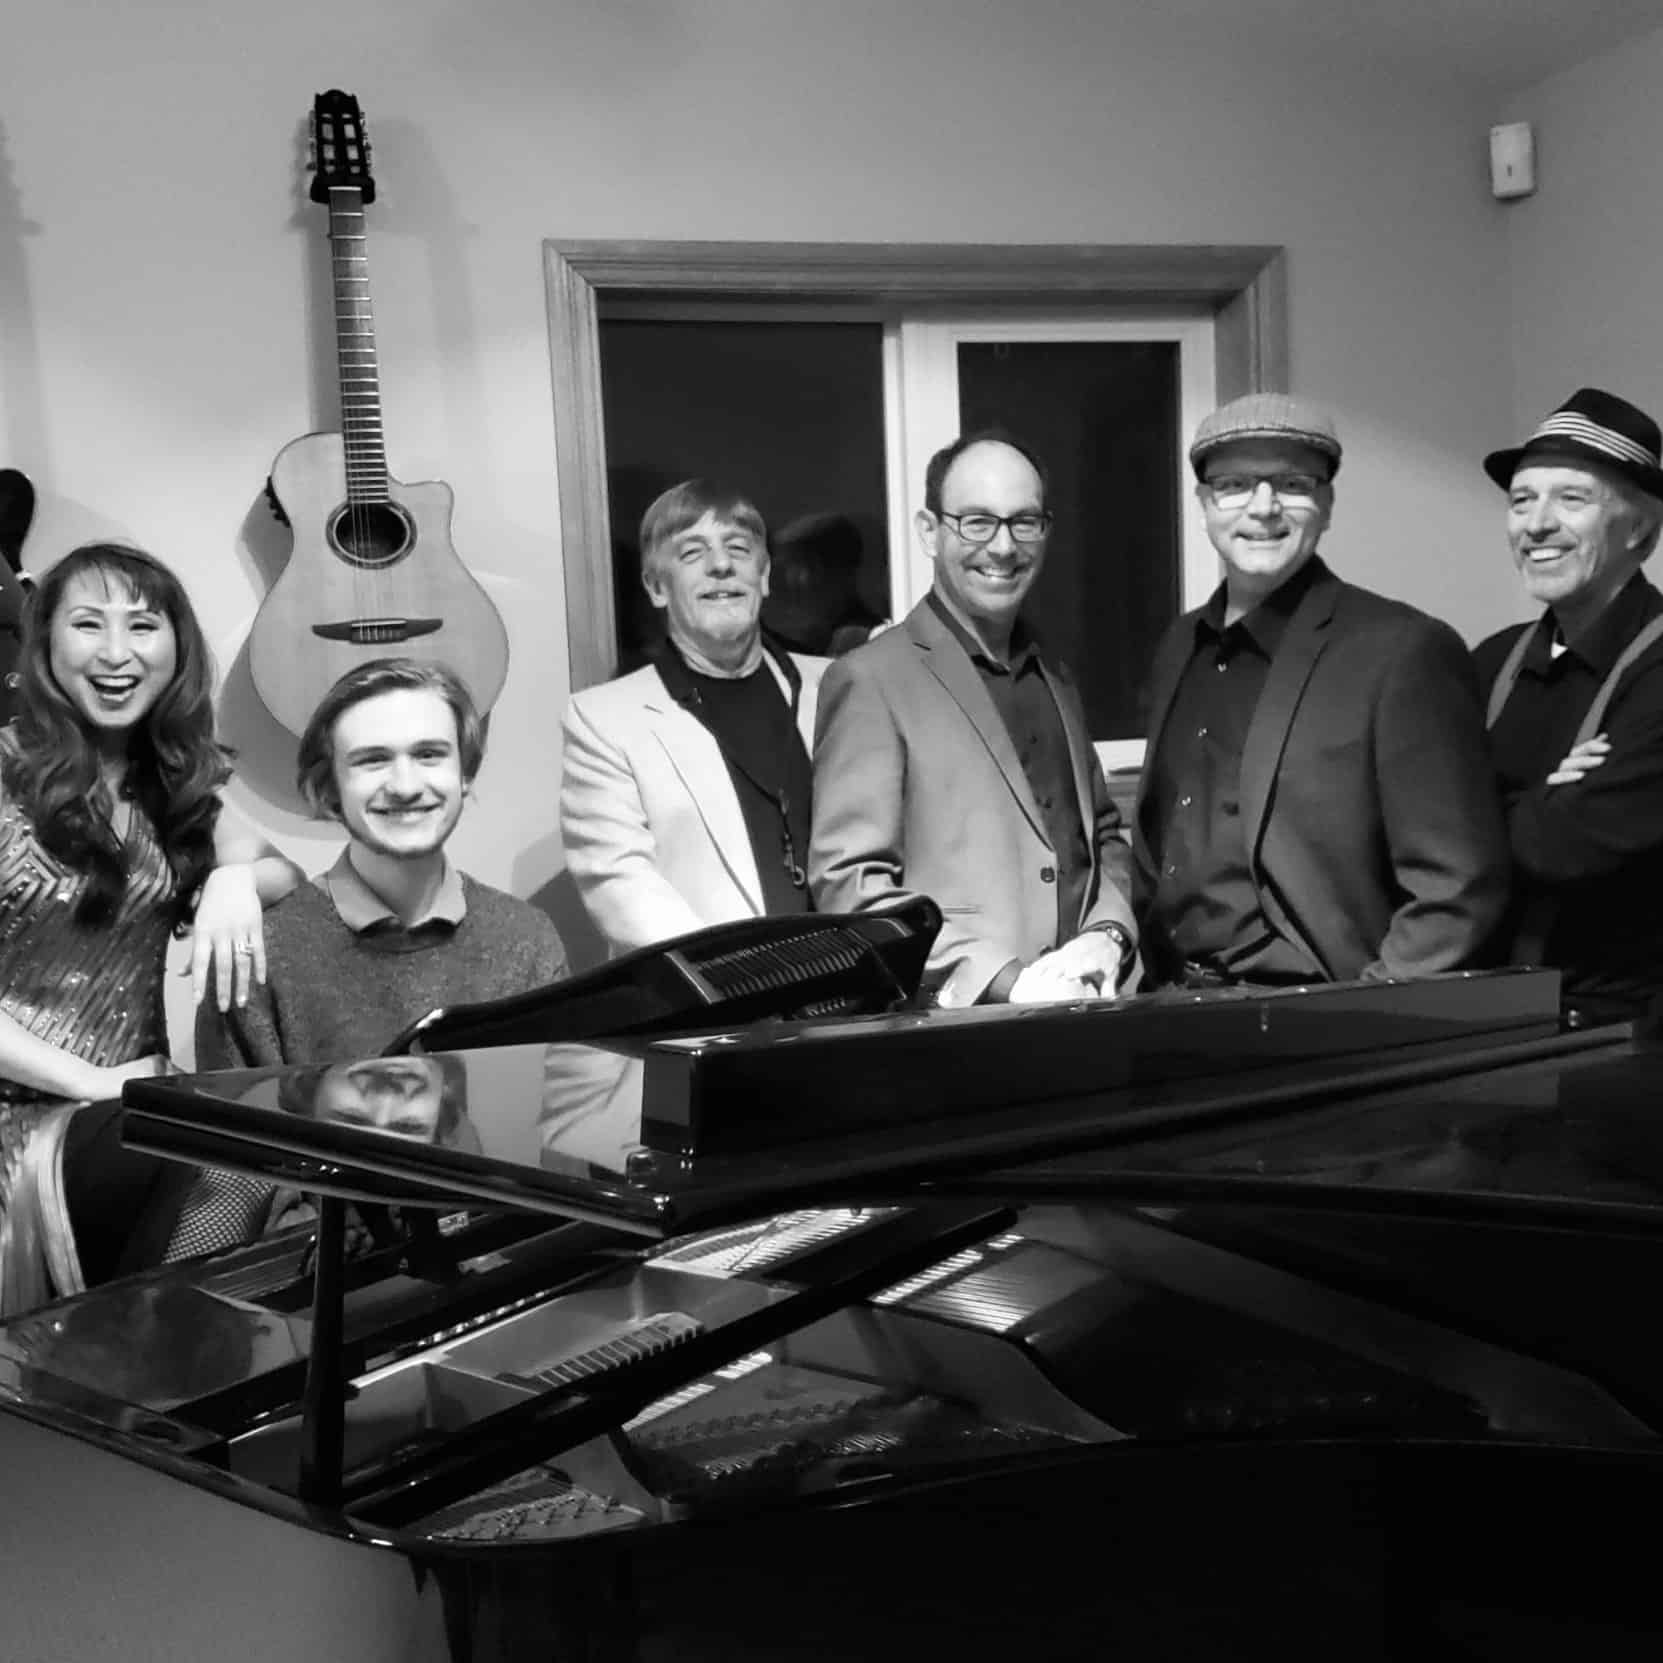 Lady and the Tramps June 7th 2020 Square 1 DD8hNH.tmp  - Jazz Night – Lady and the Tramps